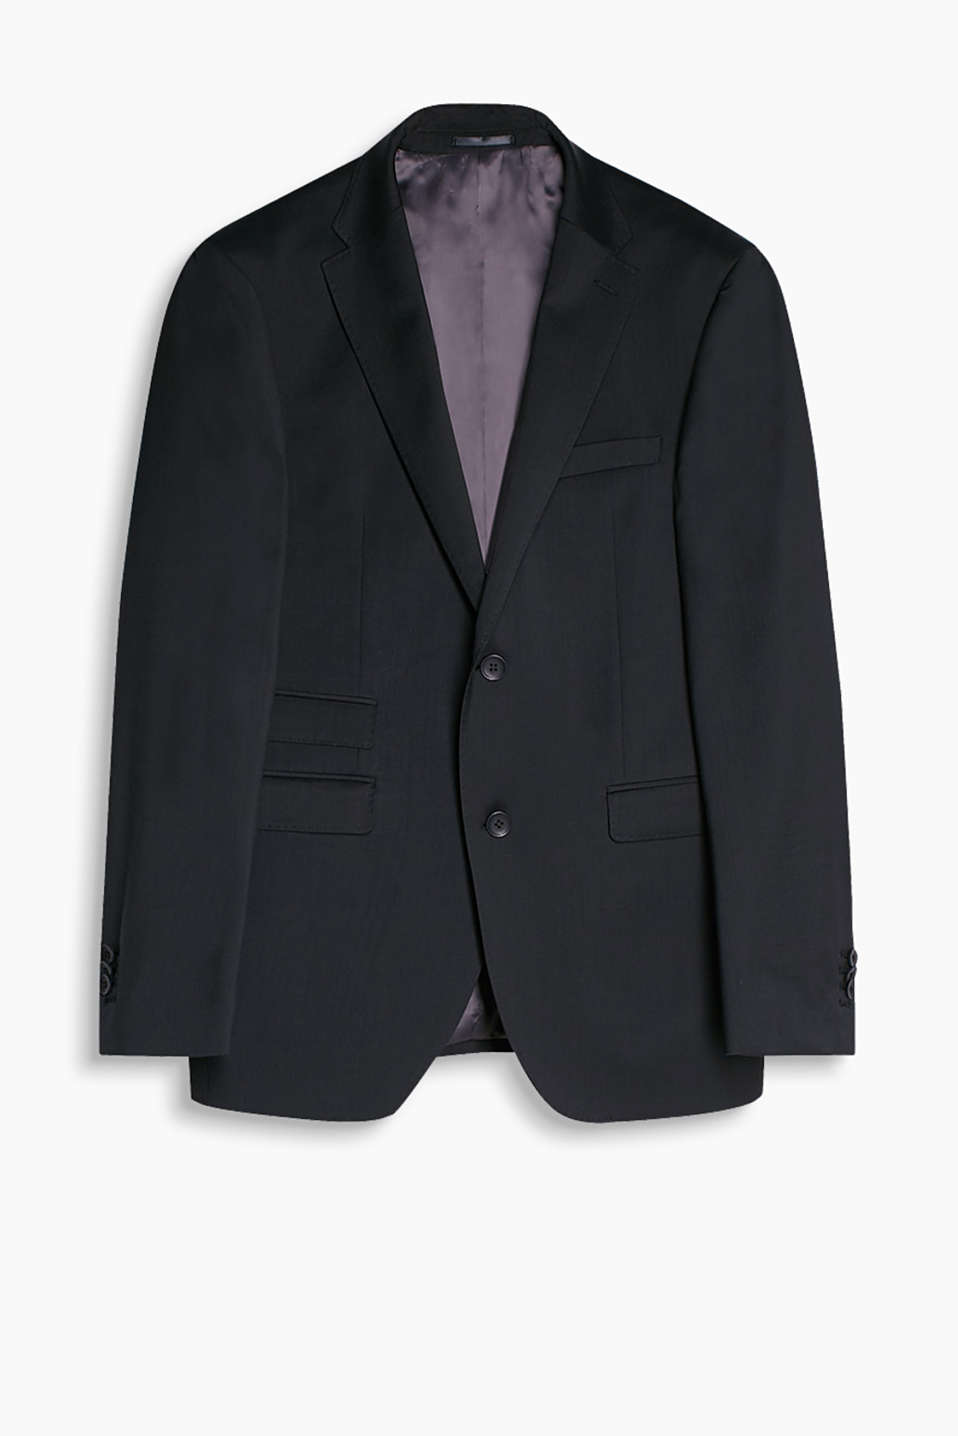 Elegant sports jacket in a timeless design with a soft sheen